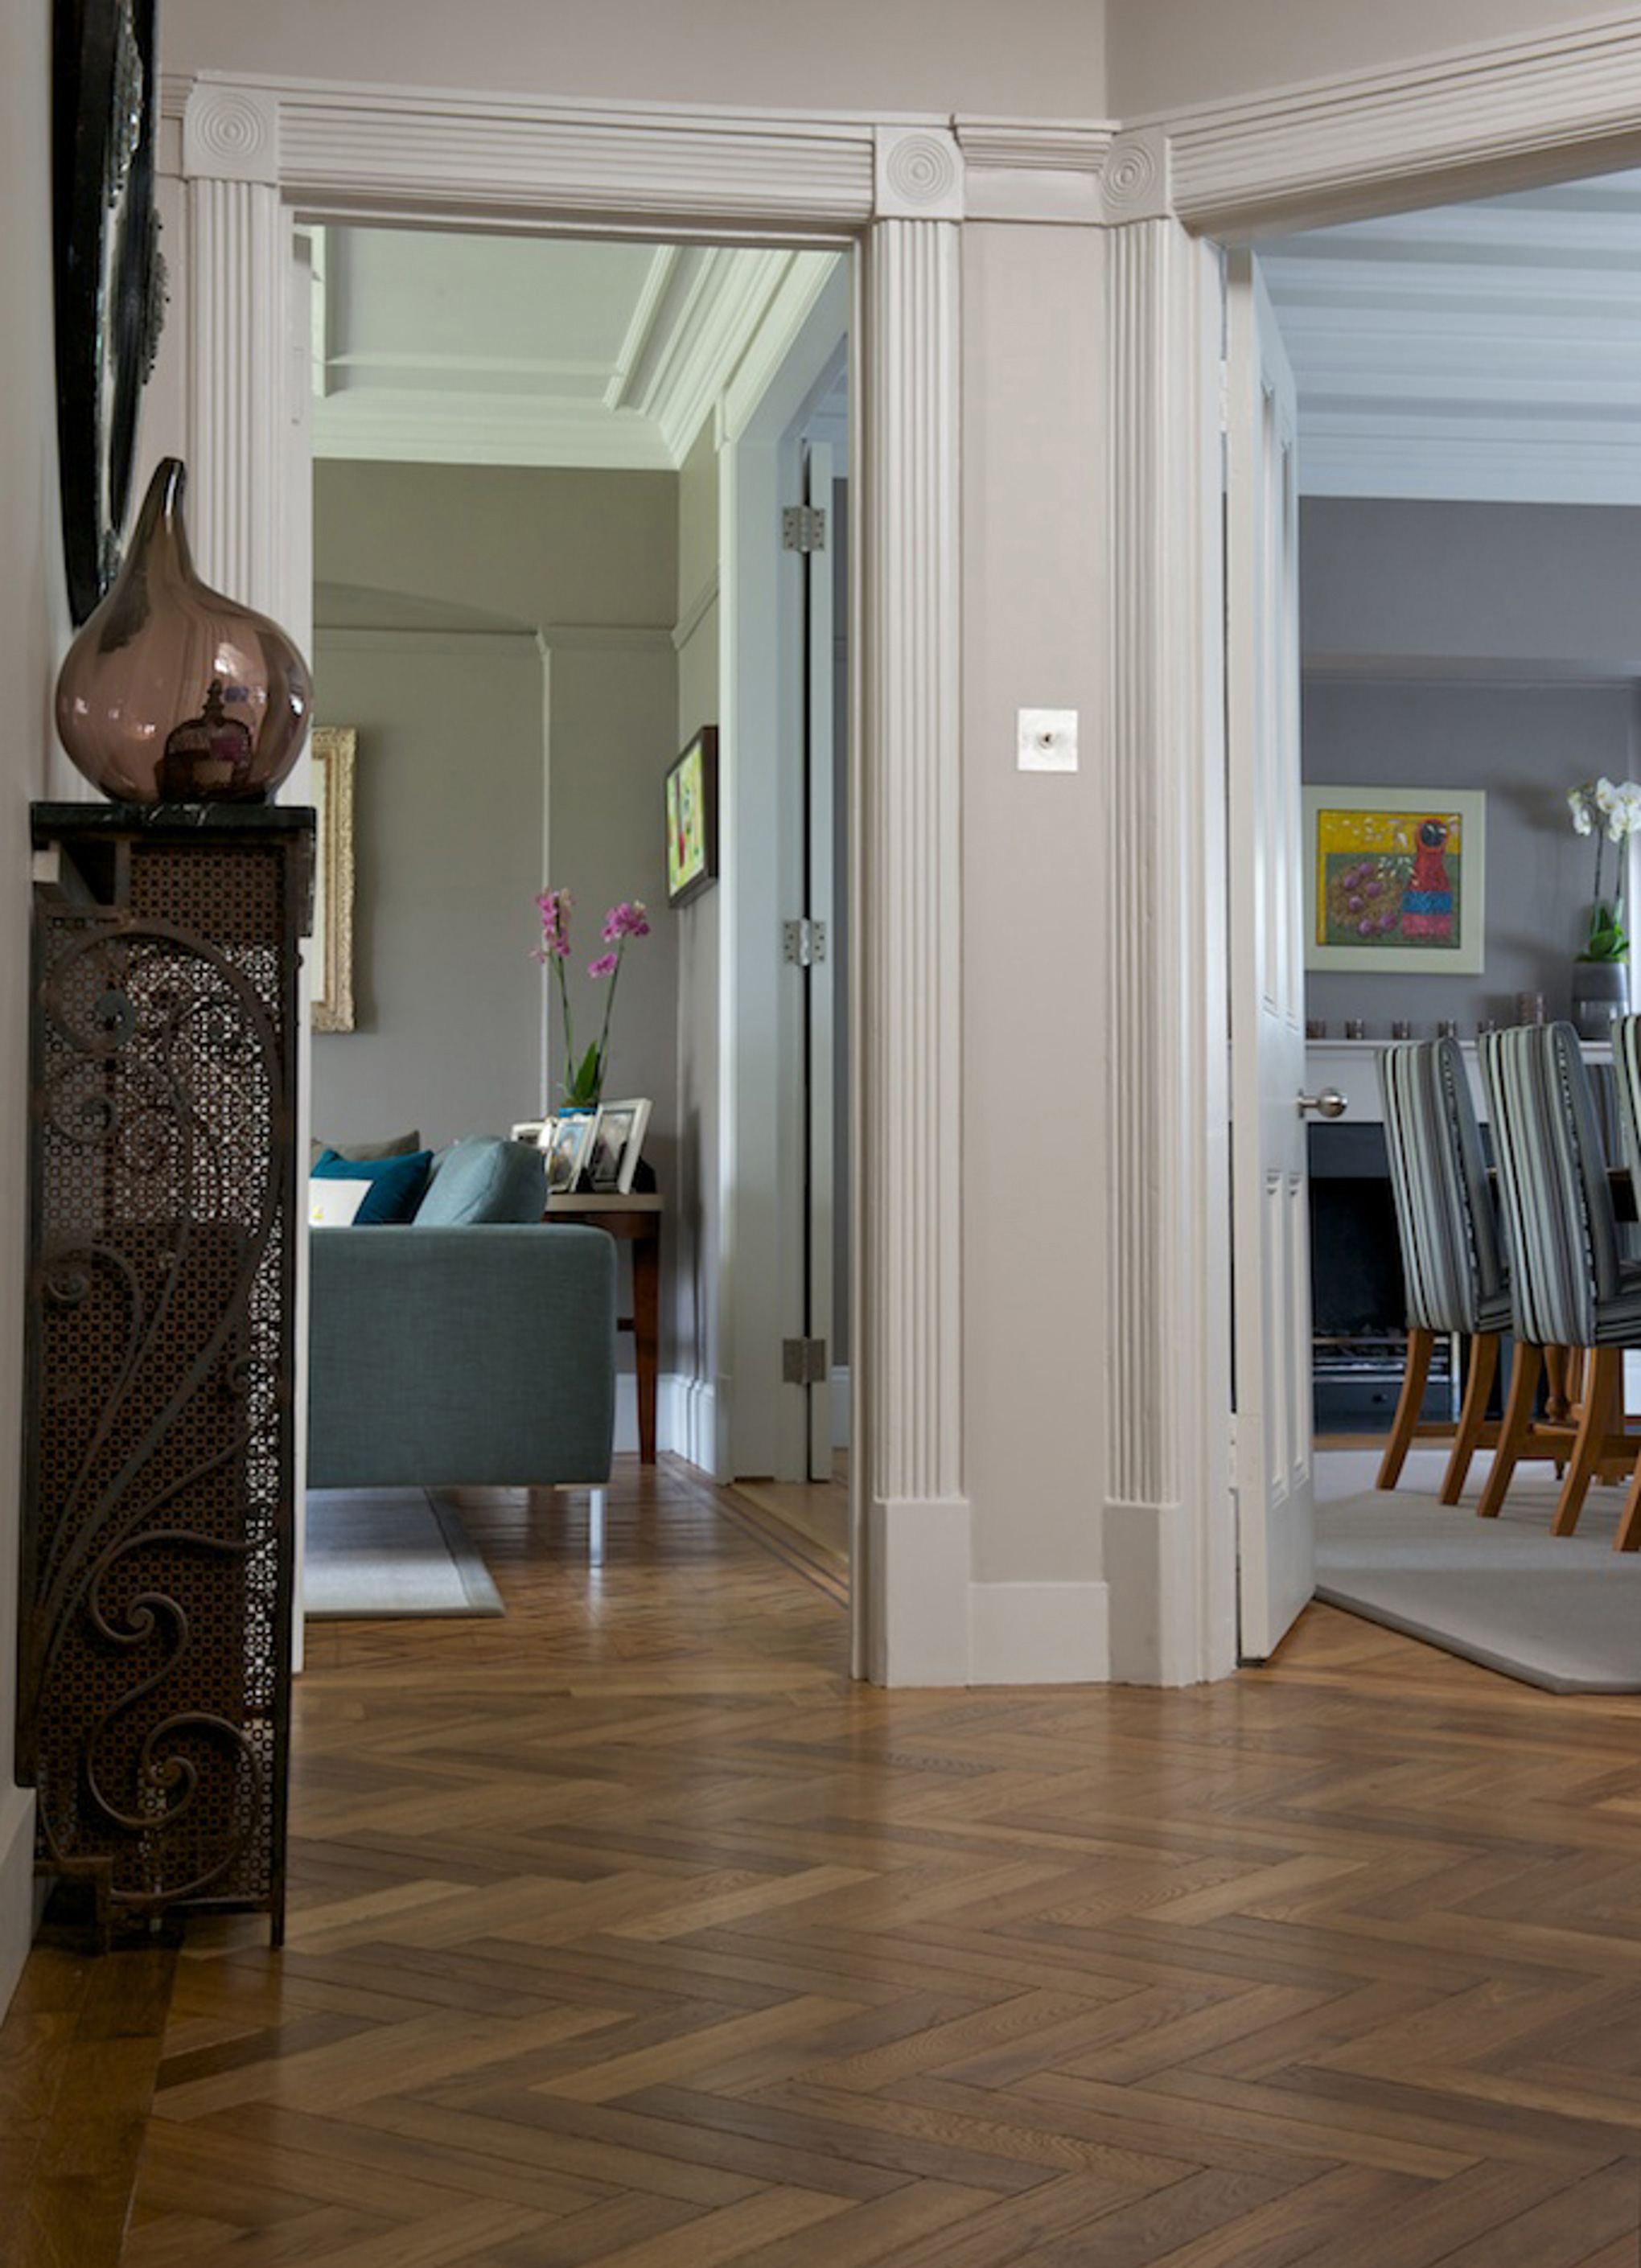 Oak landmark dalton herringbone hallway with two doors and plinth